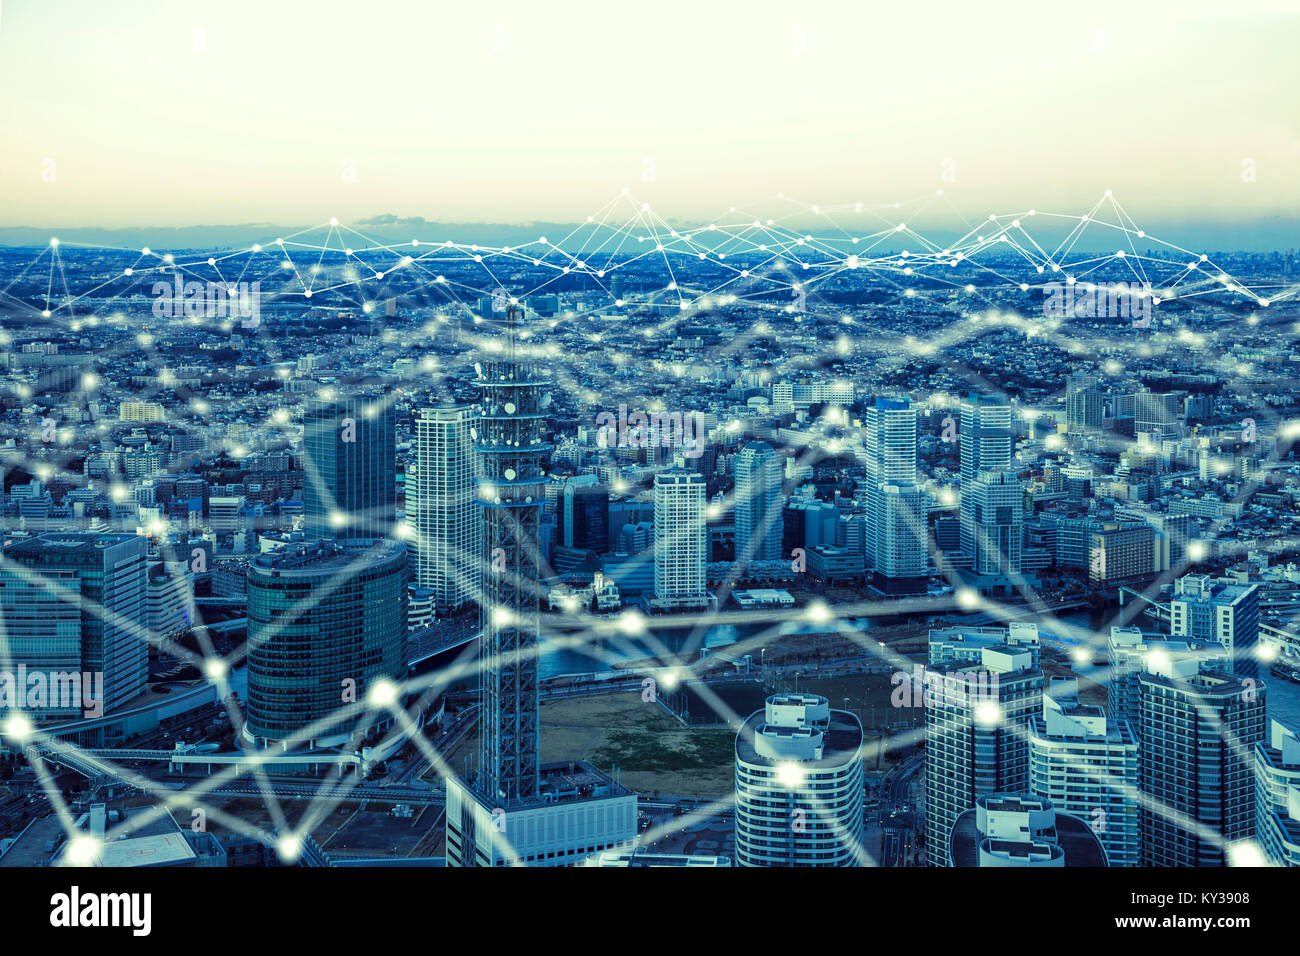 Communication network and modern buildings. Stock Photo